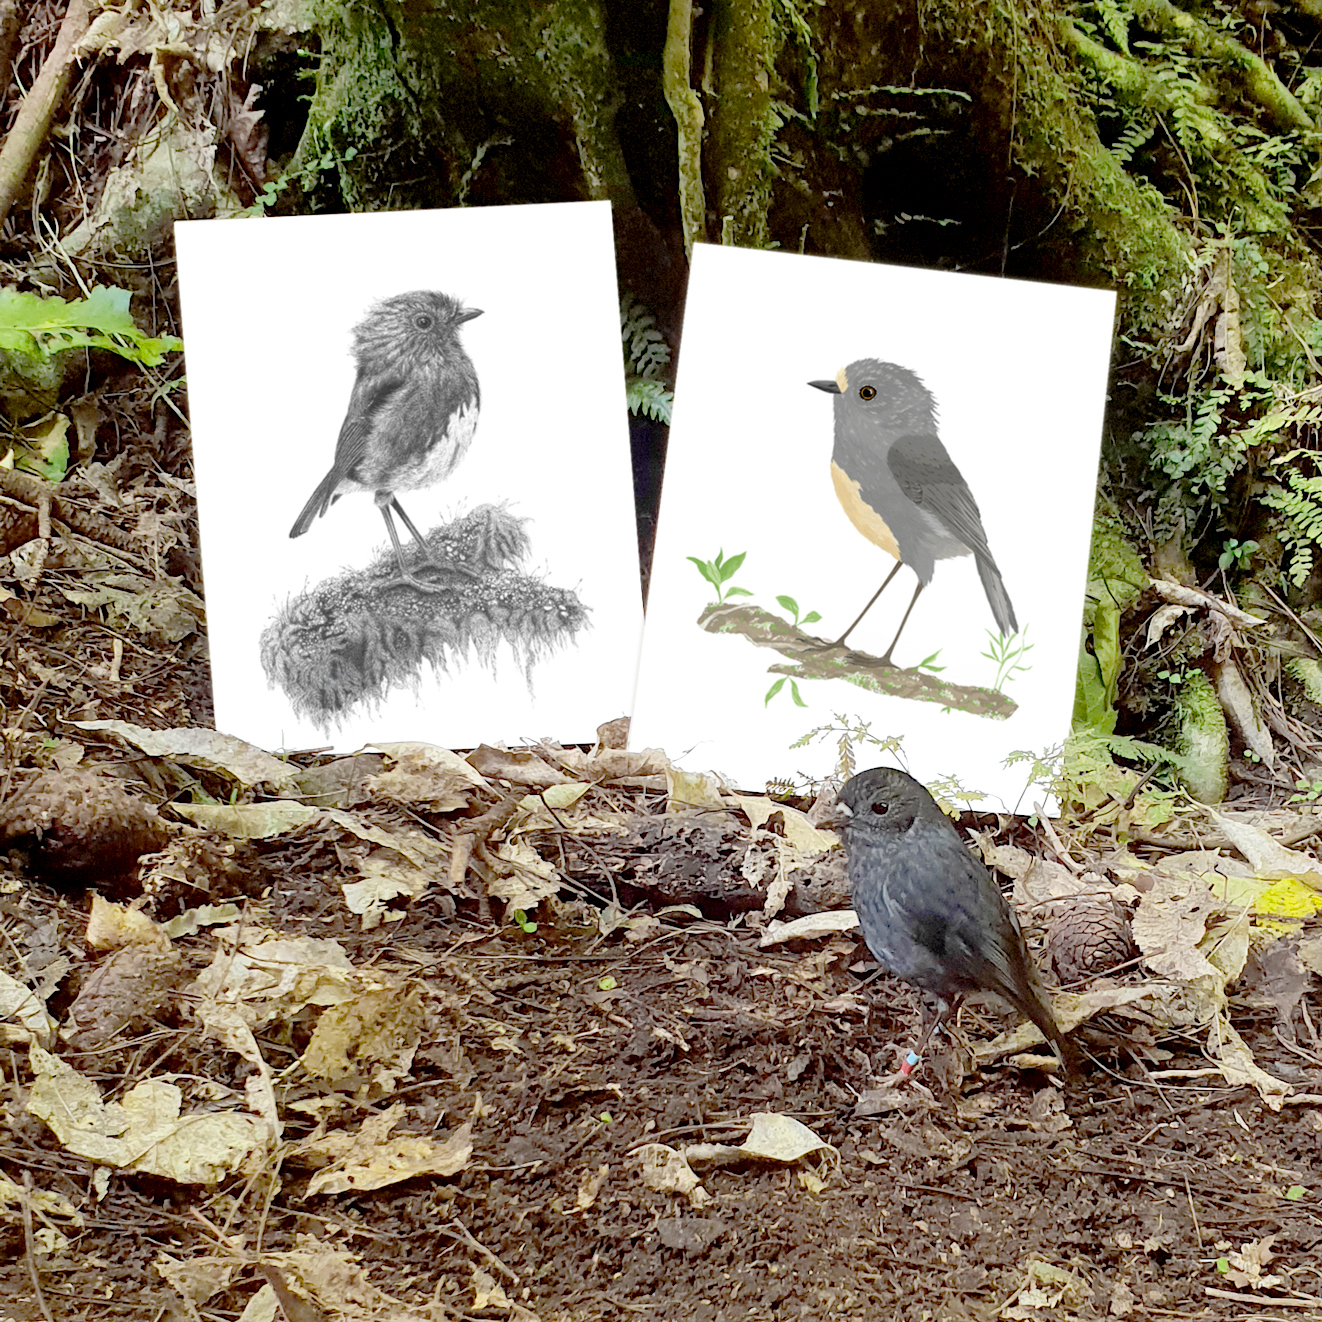 A little Robin posing in front of our prints!! I think he approves!